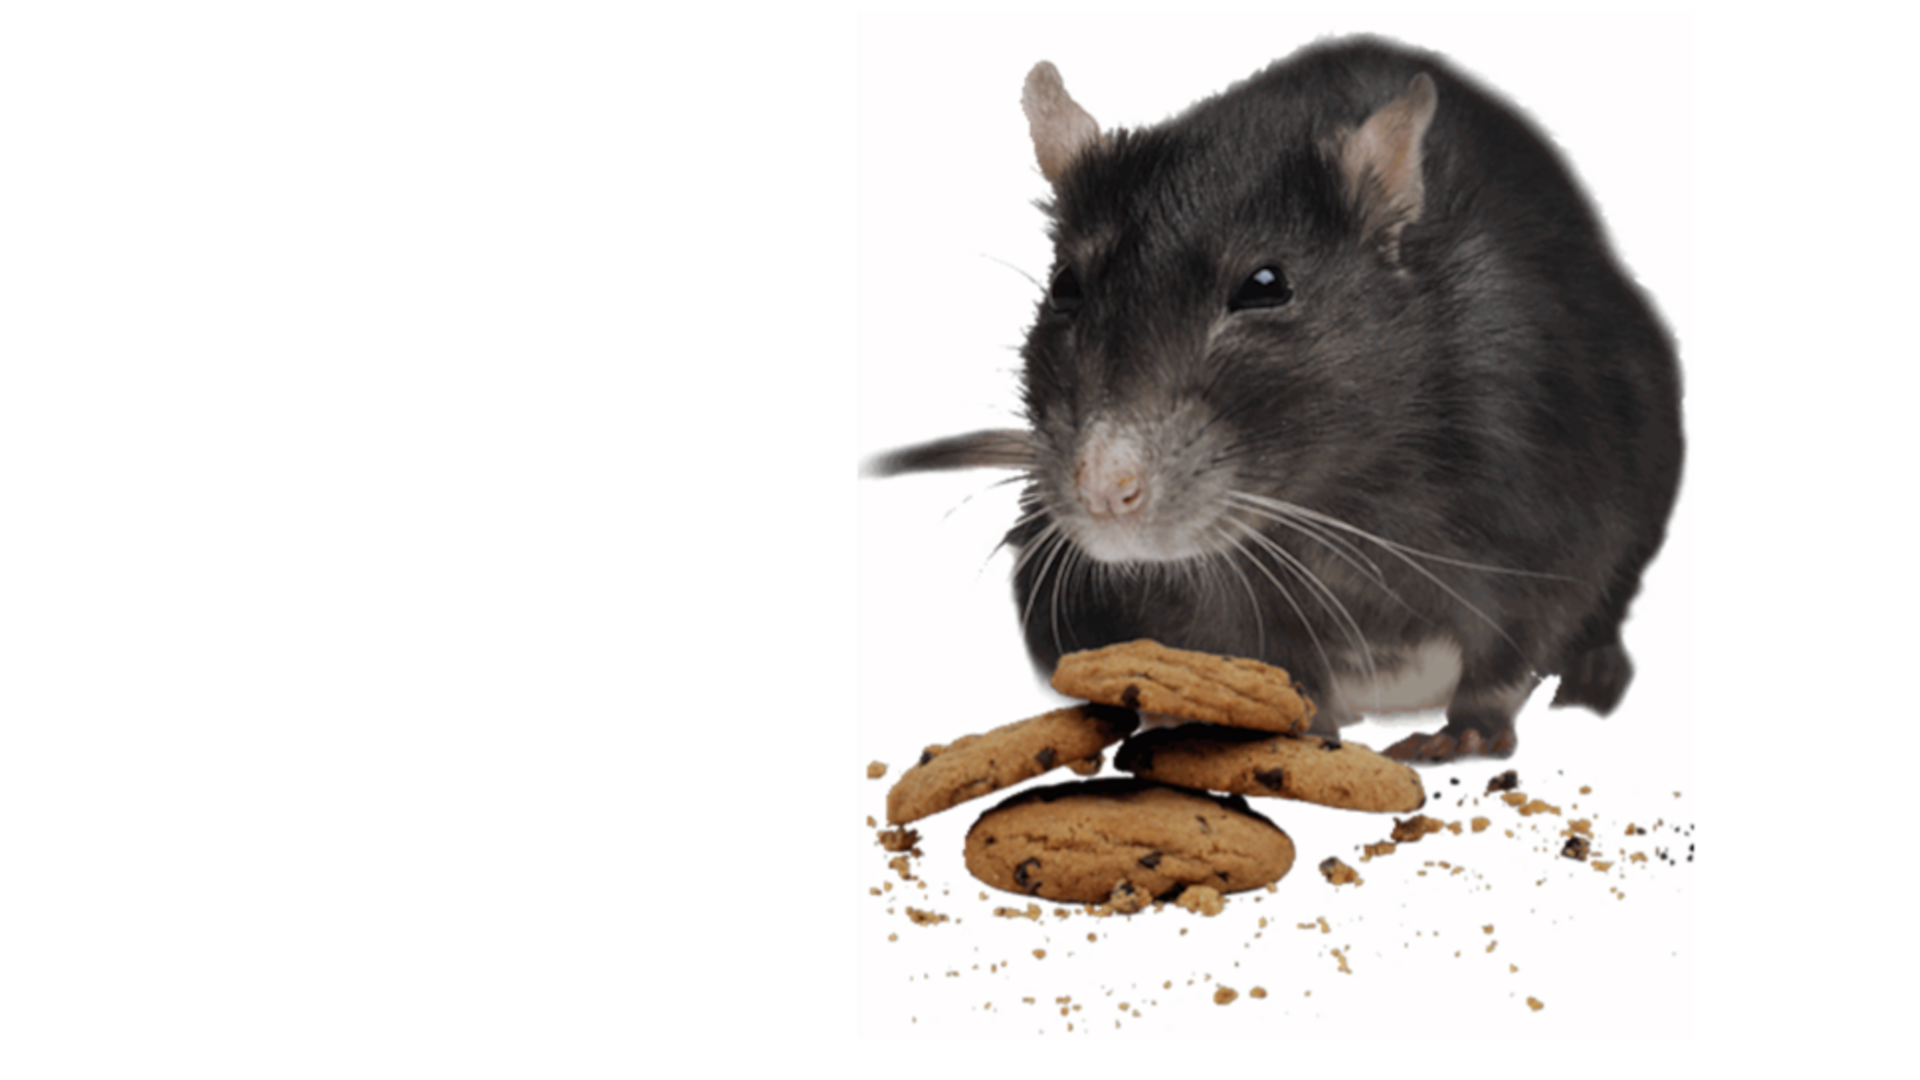 Mouse and cookies